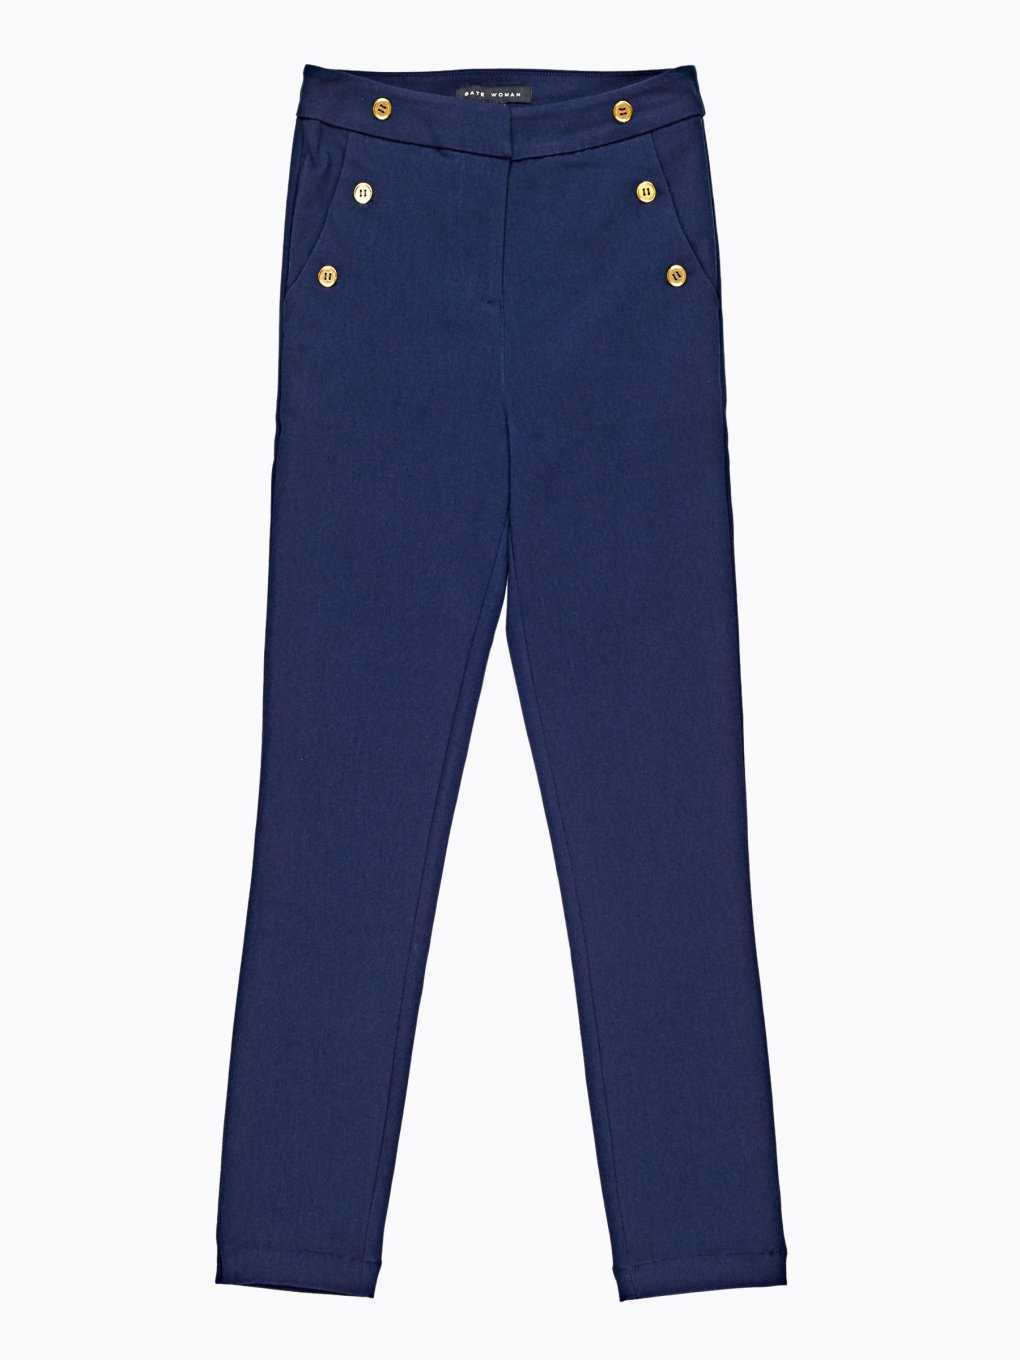 High waisted slim trousers with decorative buttons